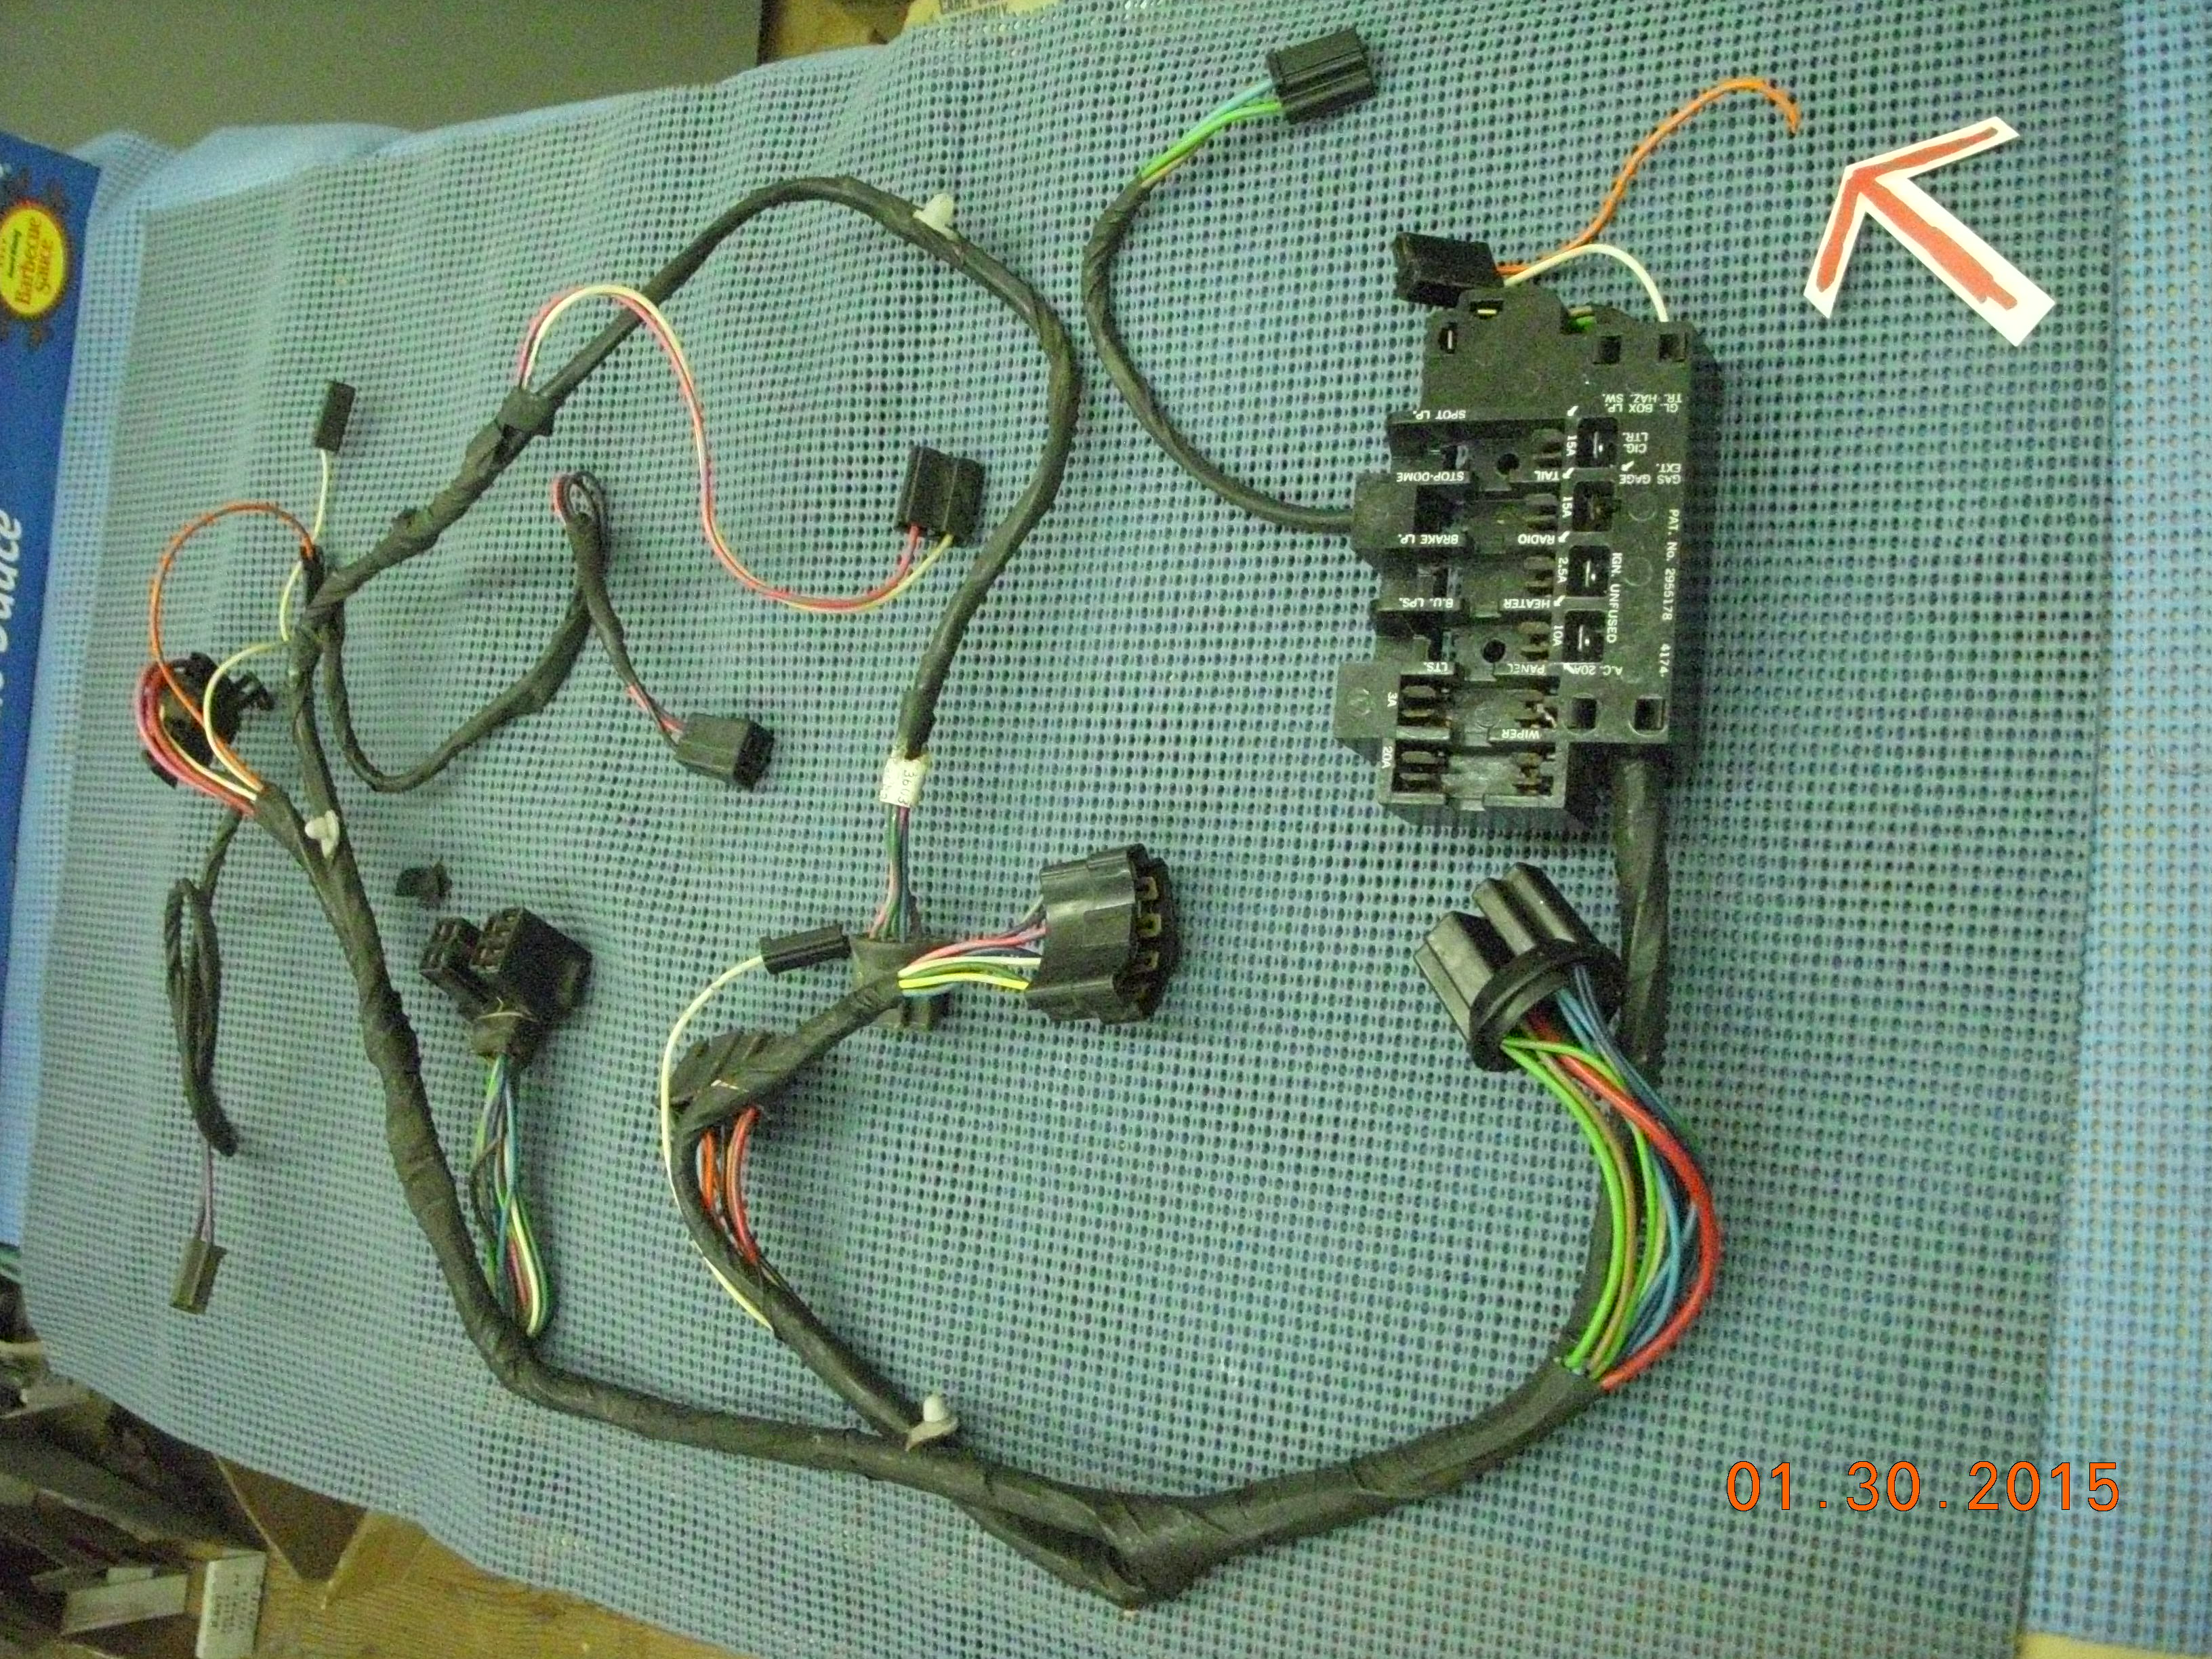 1963 gmc pickup instrument panel wiring harness assembly nos rh  oldsobsolete com 1962 GMC Pickup 1972